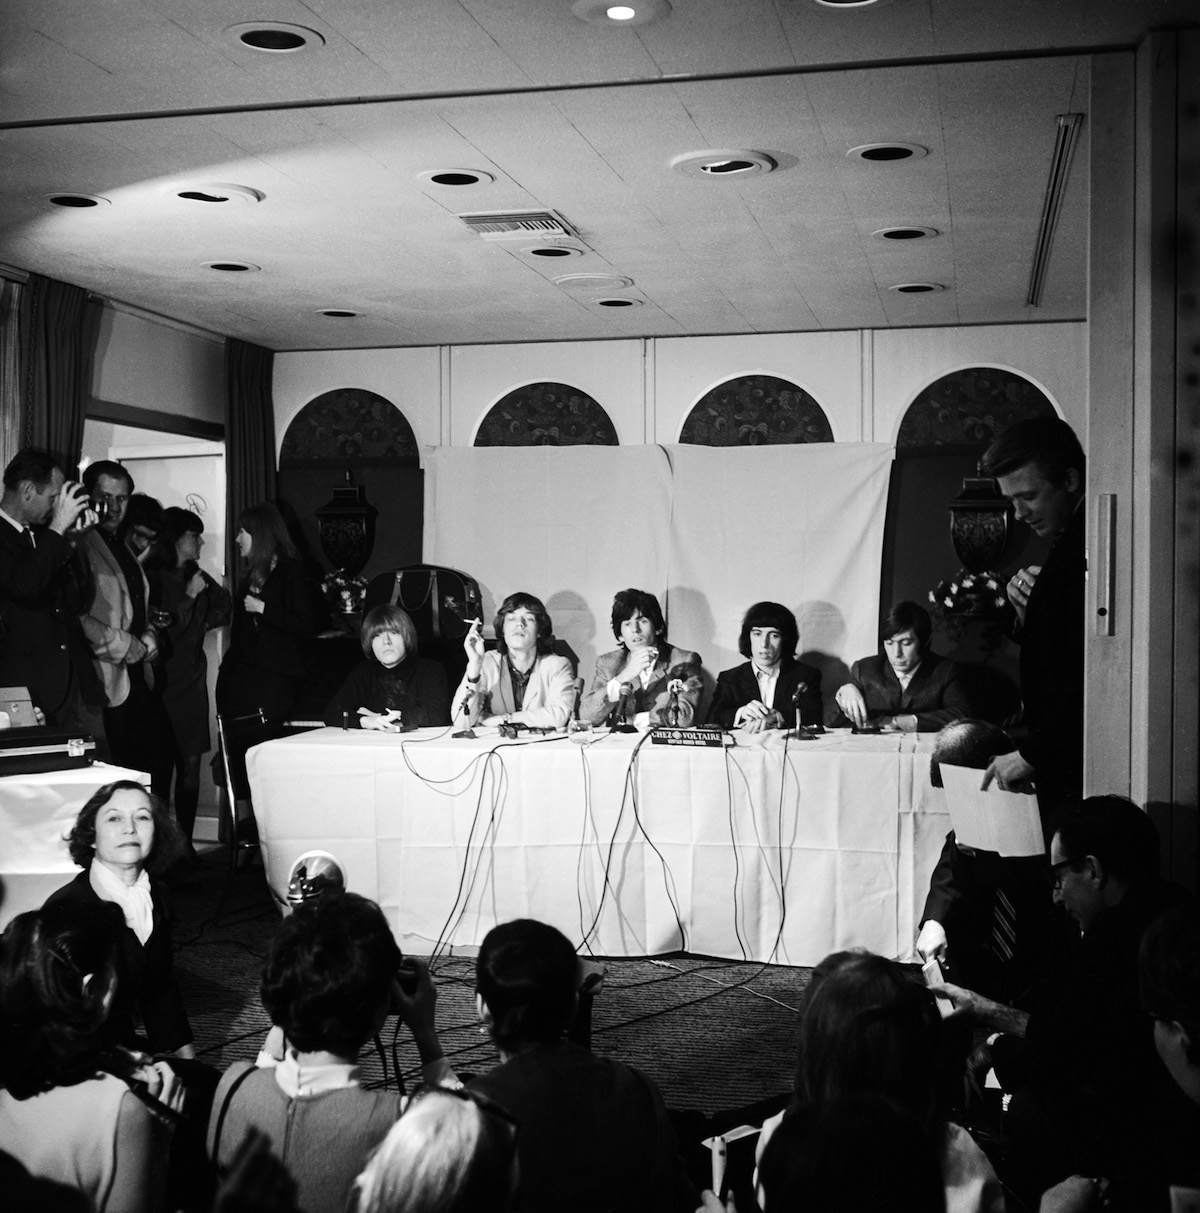 The Rolling Stones at a press conference at the Beverly Rodeo Hotel, Los Angeles, 1965. Left to right: Brian Jones, Mick Jagger, Keith Richards, Bill Wyman and Charlie Watts. (Photo by Hulton Archive/Getty Images)